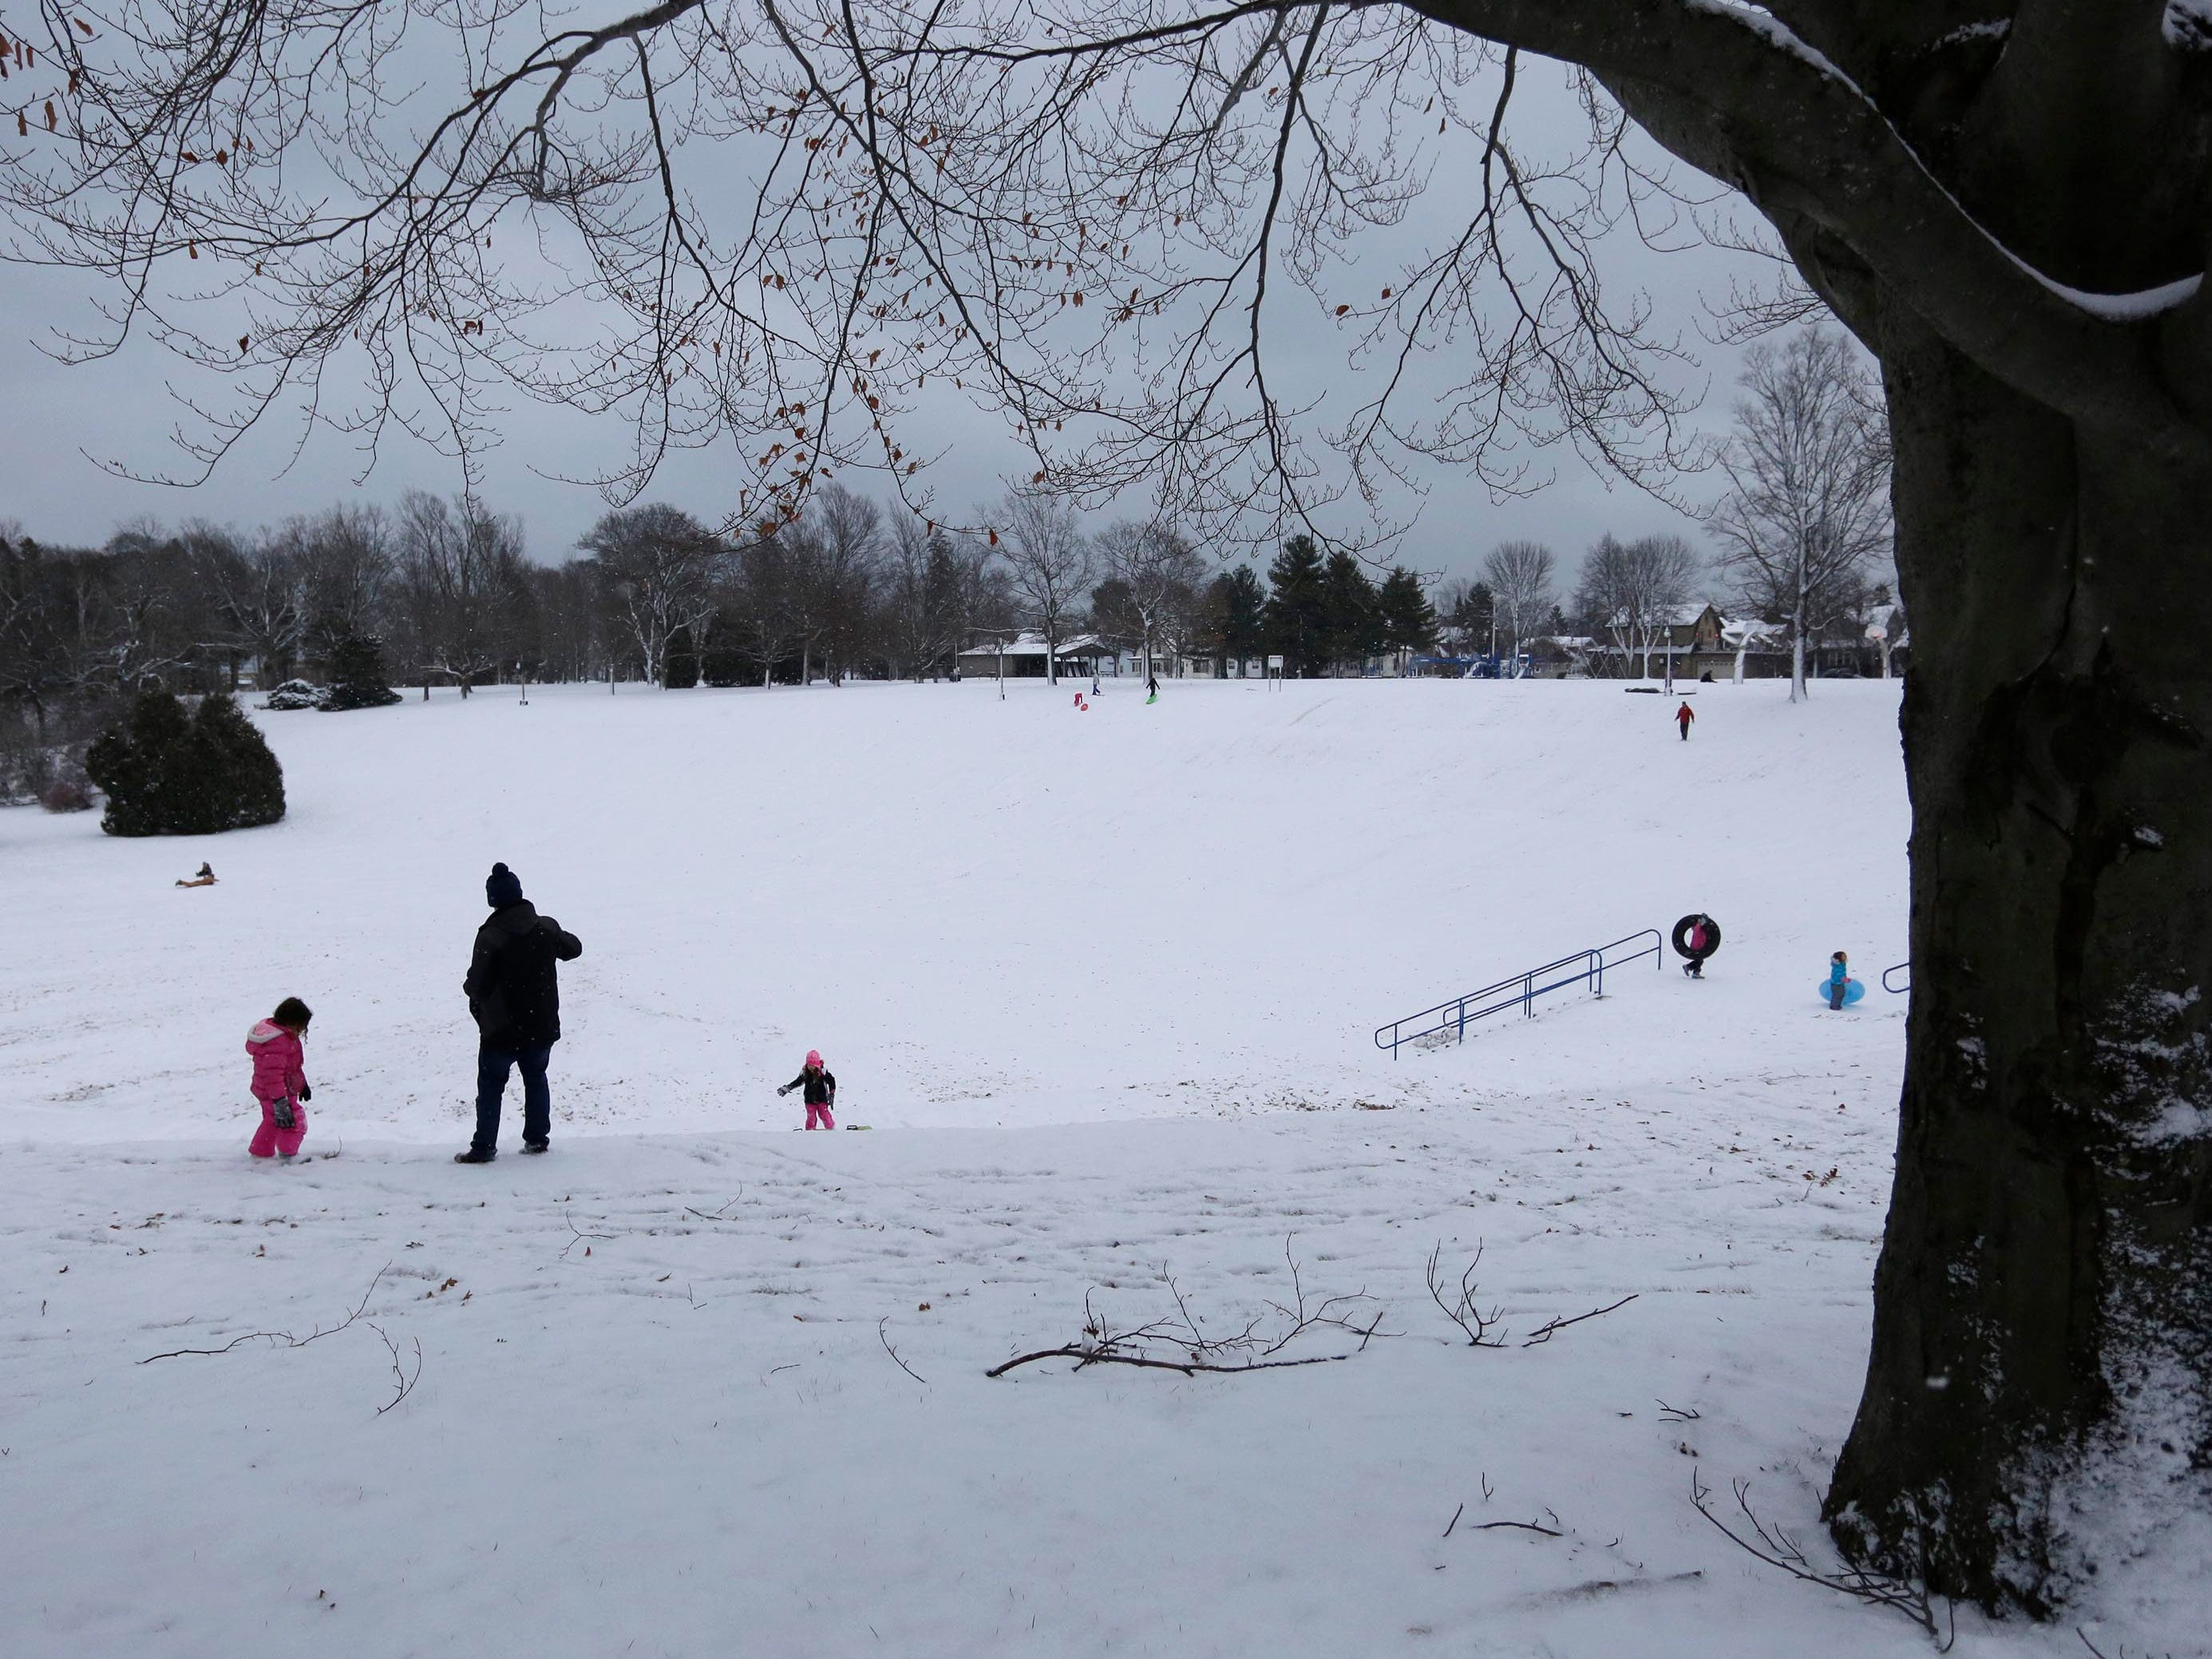 Children and adults survey the sledding area at Vollrath Bowl, Wednesday, January 2, 2019, in Sheboygan, Wis.